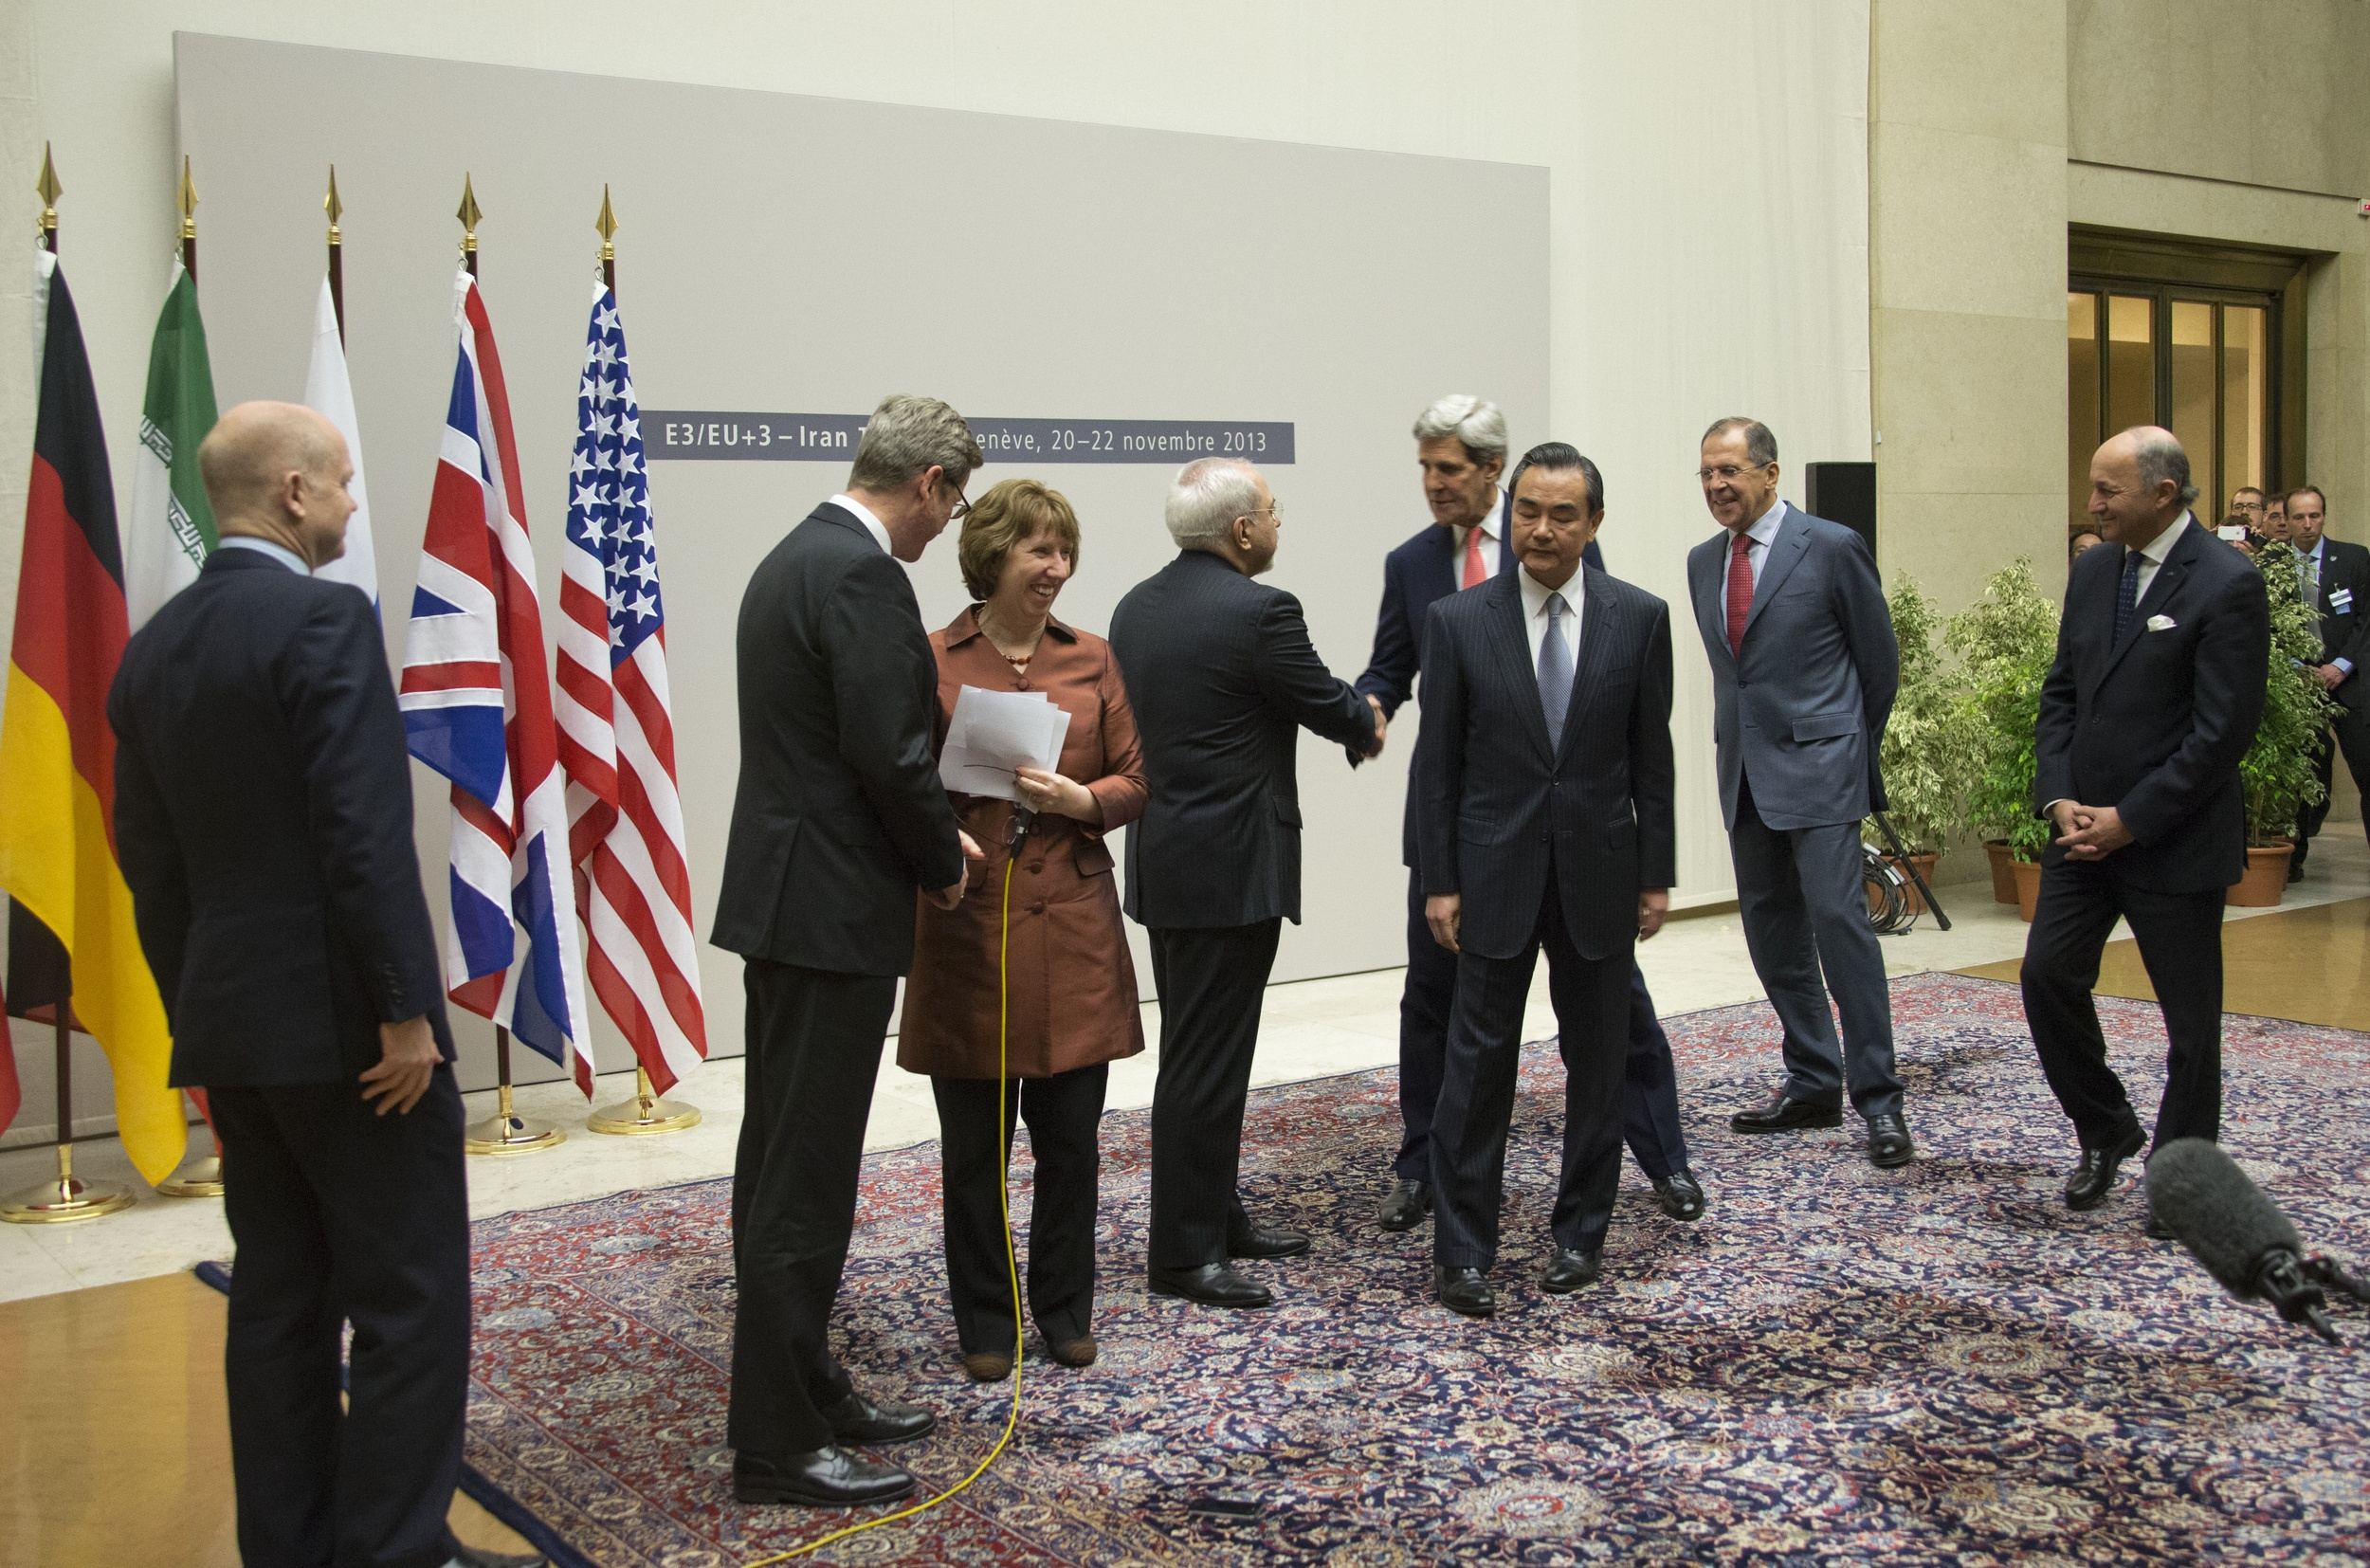 Click photo to download. Caption: U.S. Secretary of State John Kerry (pictured at center) shakes hands with Iranian Foreign Minister Javad Zarif after the P5+1 powers and Iran concluded negotiations on the Iran nuclear program on November 24, 2013. Credit: U.S. Department of State.